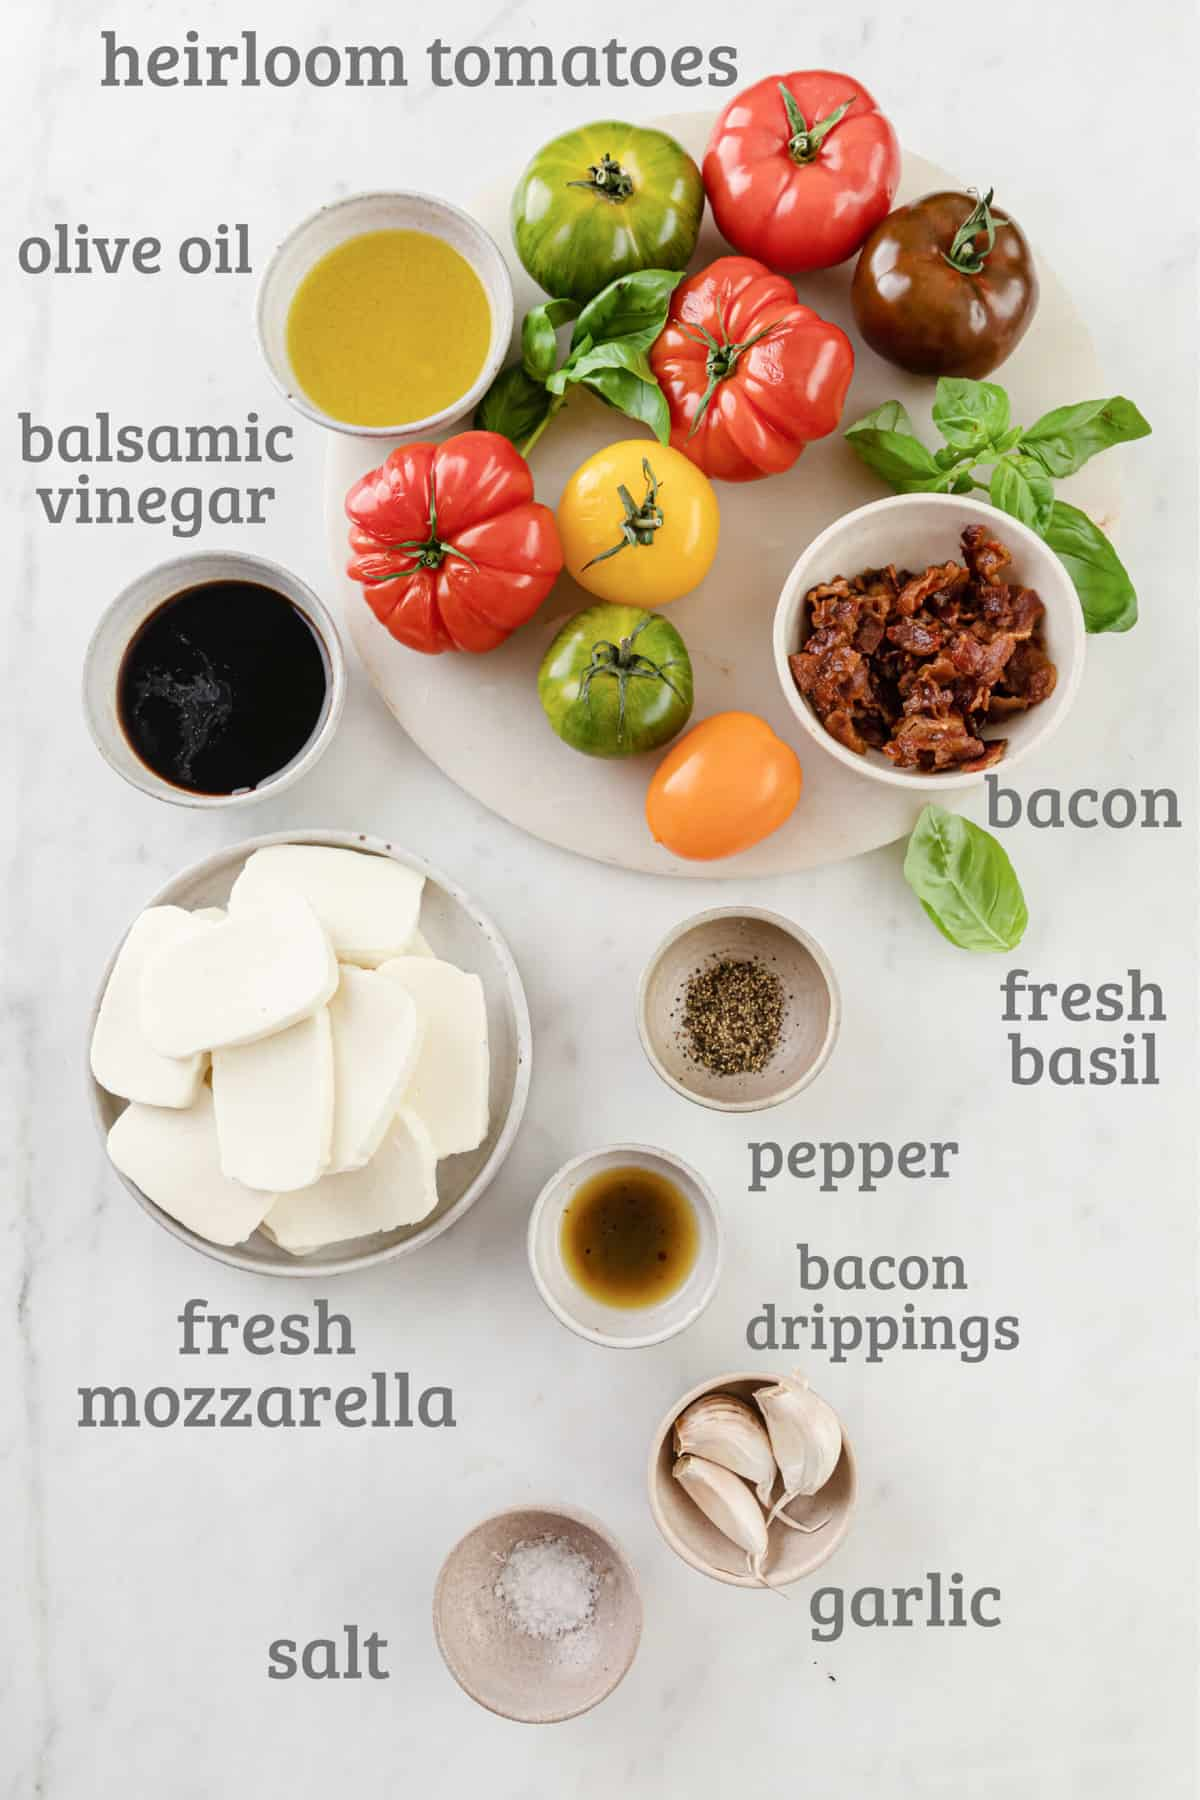 Ingredients laid out for a baked heirloom caprese